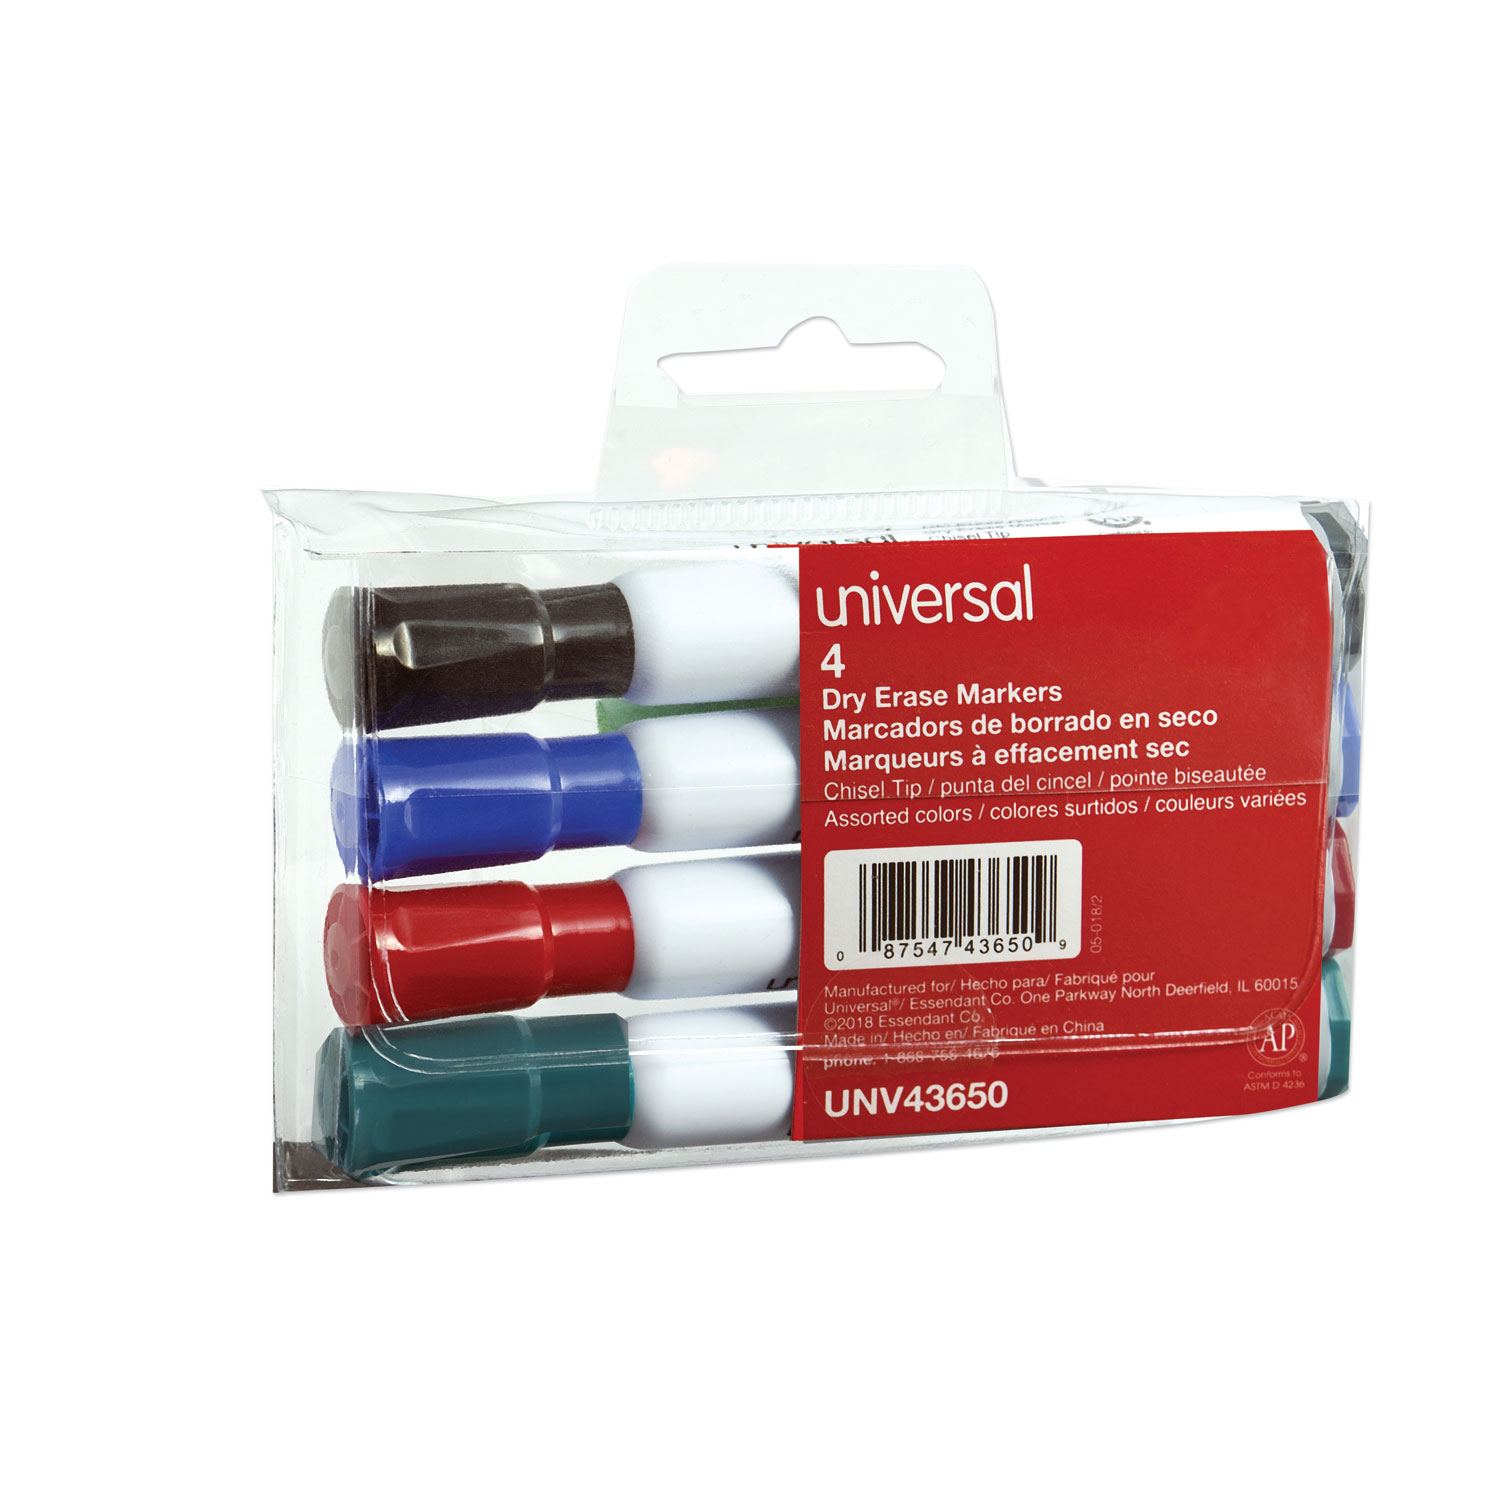 Dry Erase Marker, Broad Chisel Tip, Assorted Colors, 4/Set